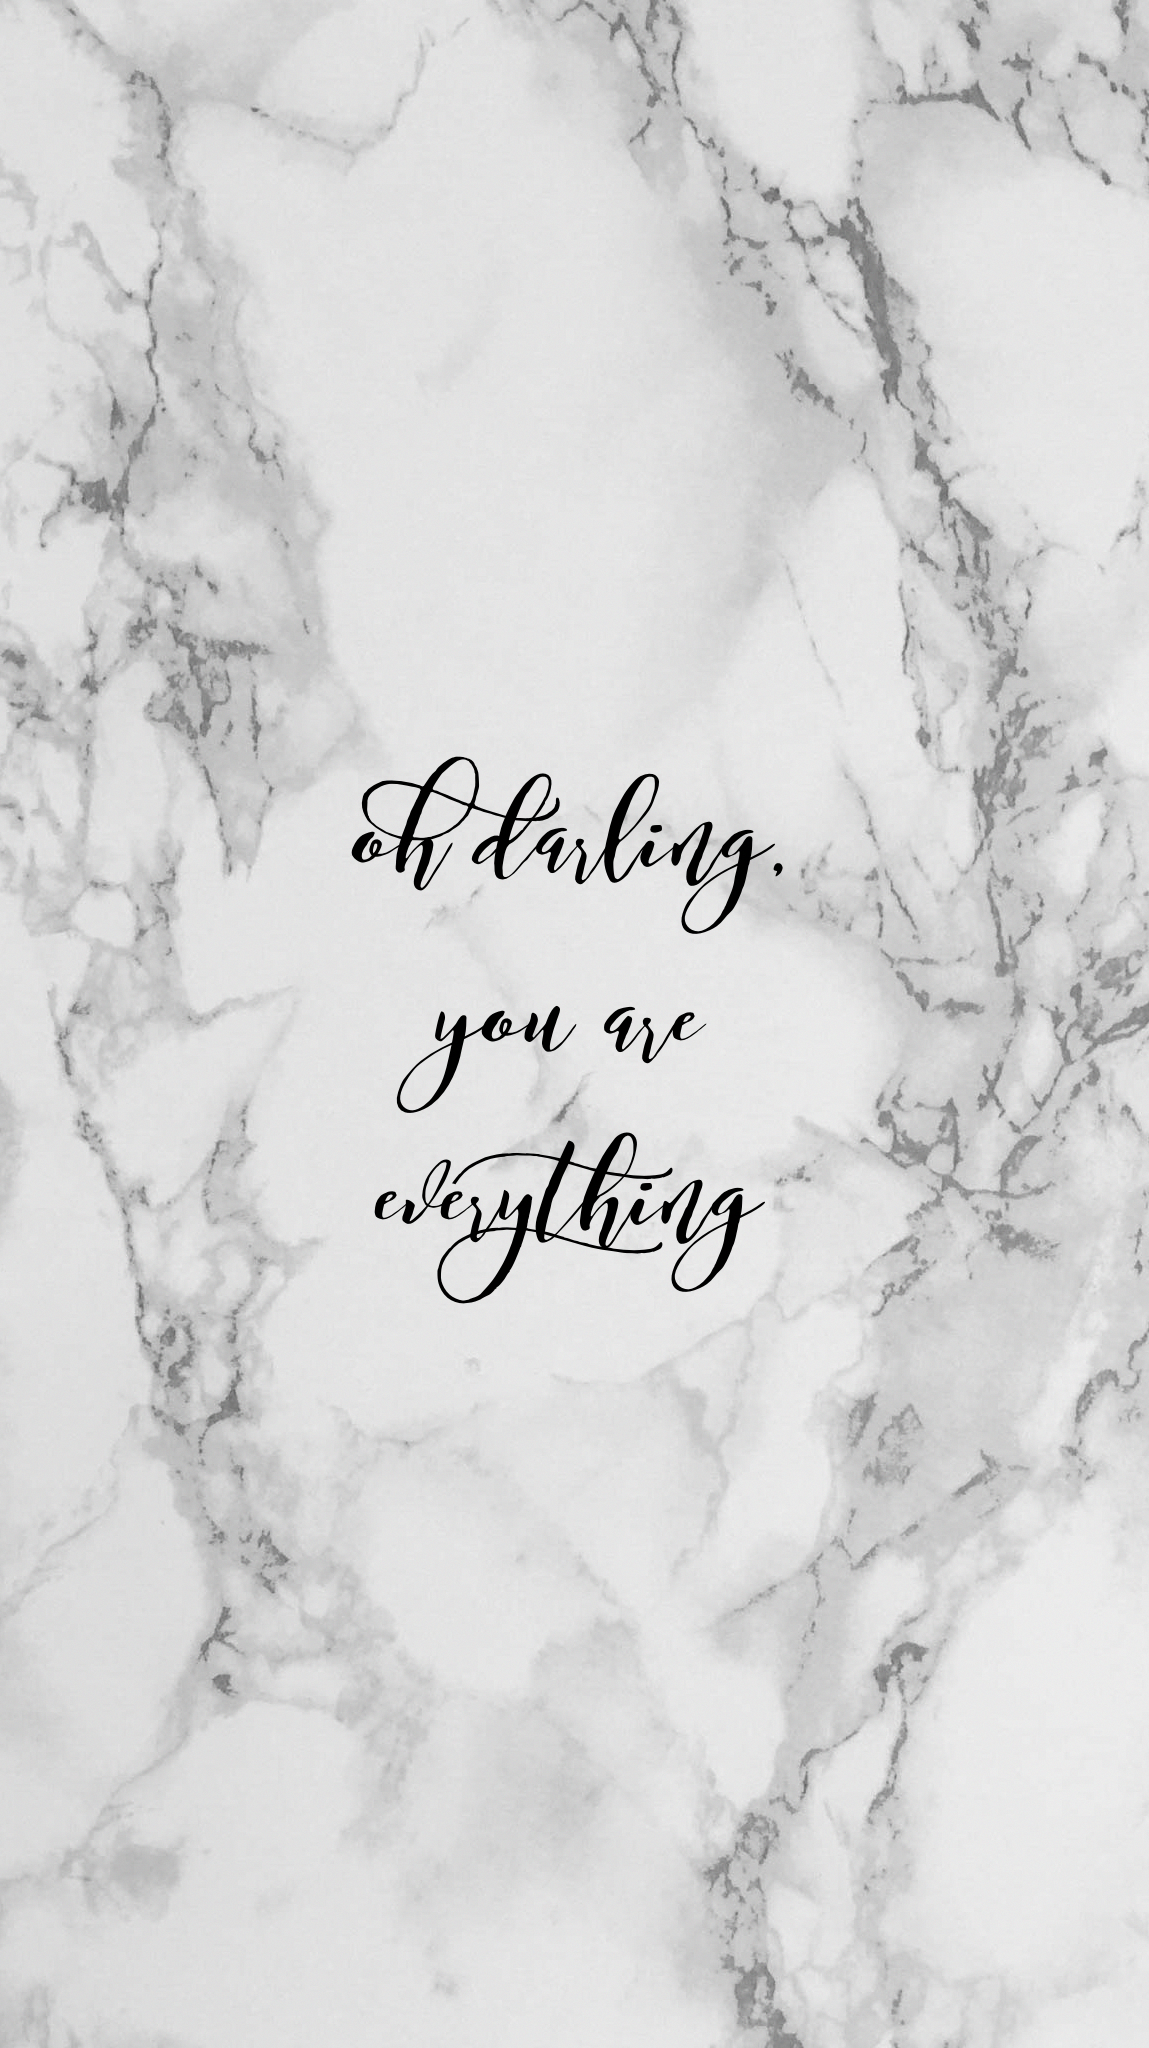 Pretty positivity b w marble quote iphone wallpaperdesignllexxus iphonewallpapertumblr